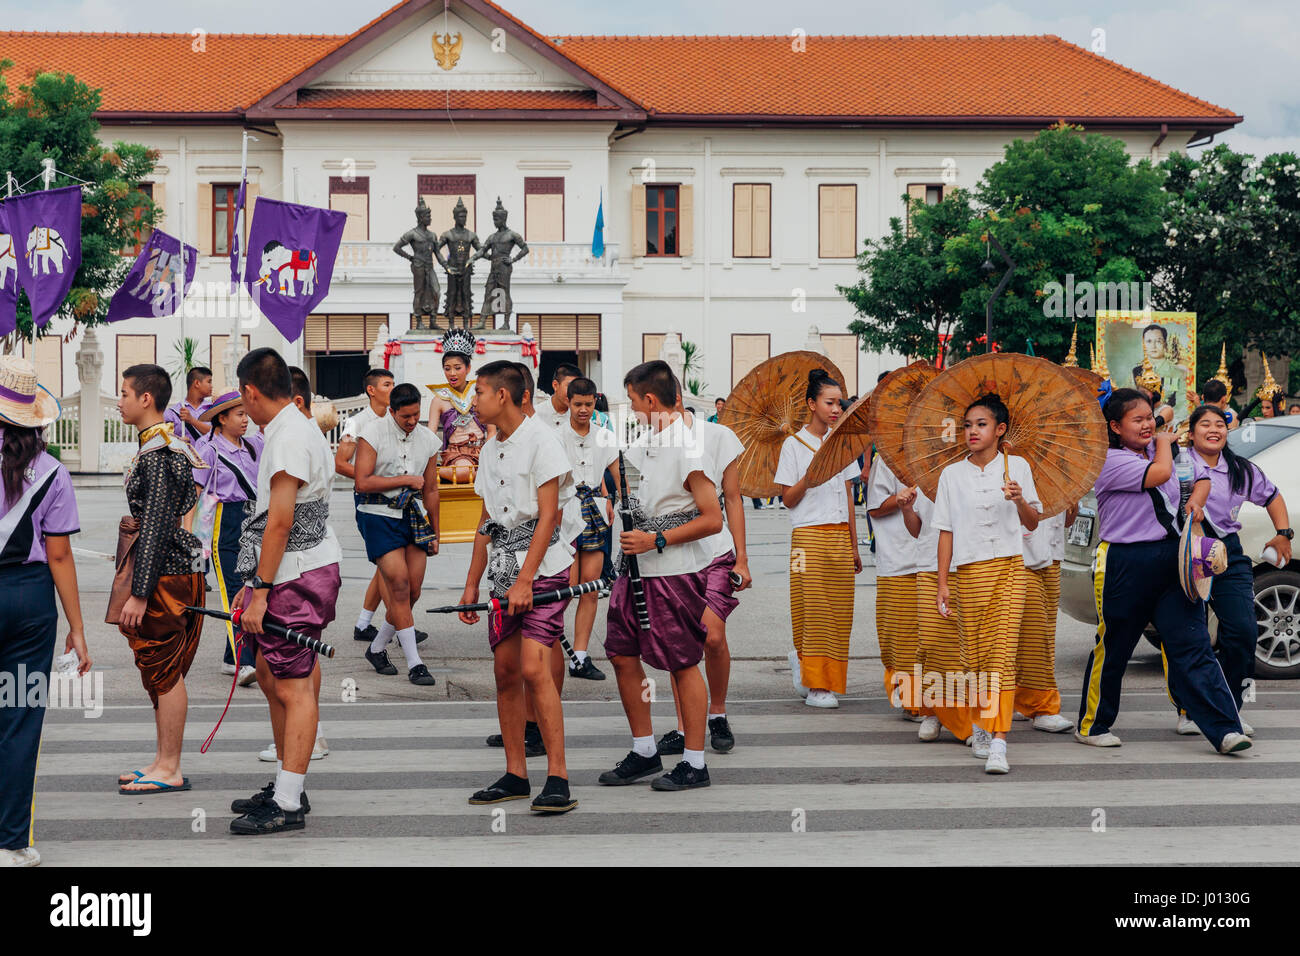 Chiang Mai, Thailand - August 24, 2016: Young boys and girls in festival costumes parade near the Three Kings Monument - Stock Image